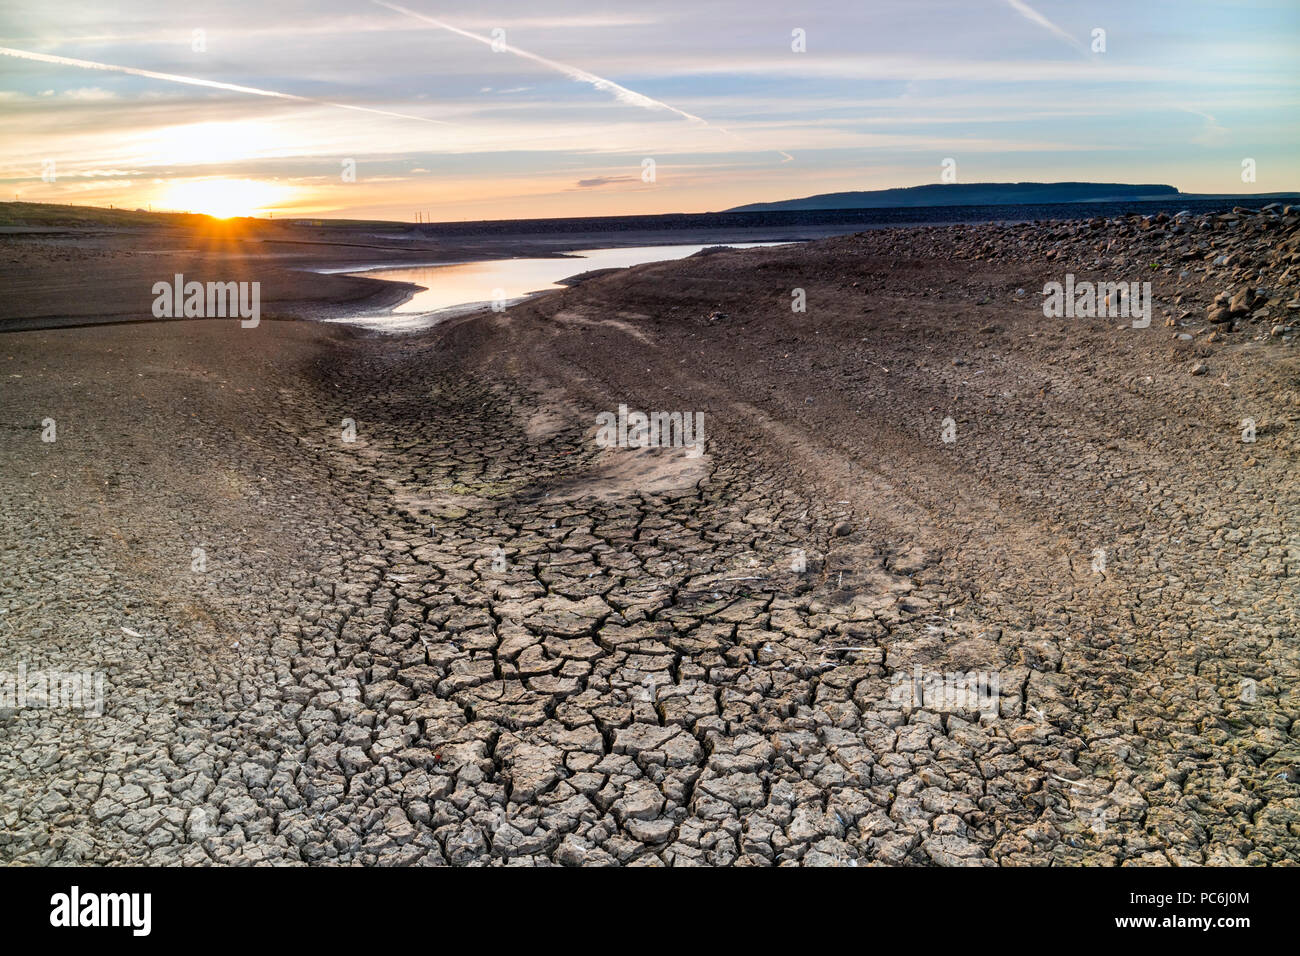 Low Water Levels and Sun Parched and Cracked Ground, Selset Reservoir, Summer 2018, Teesdale, County Durham, UK. - Stock Image